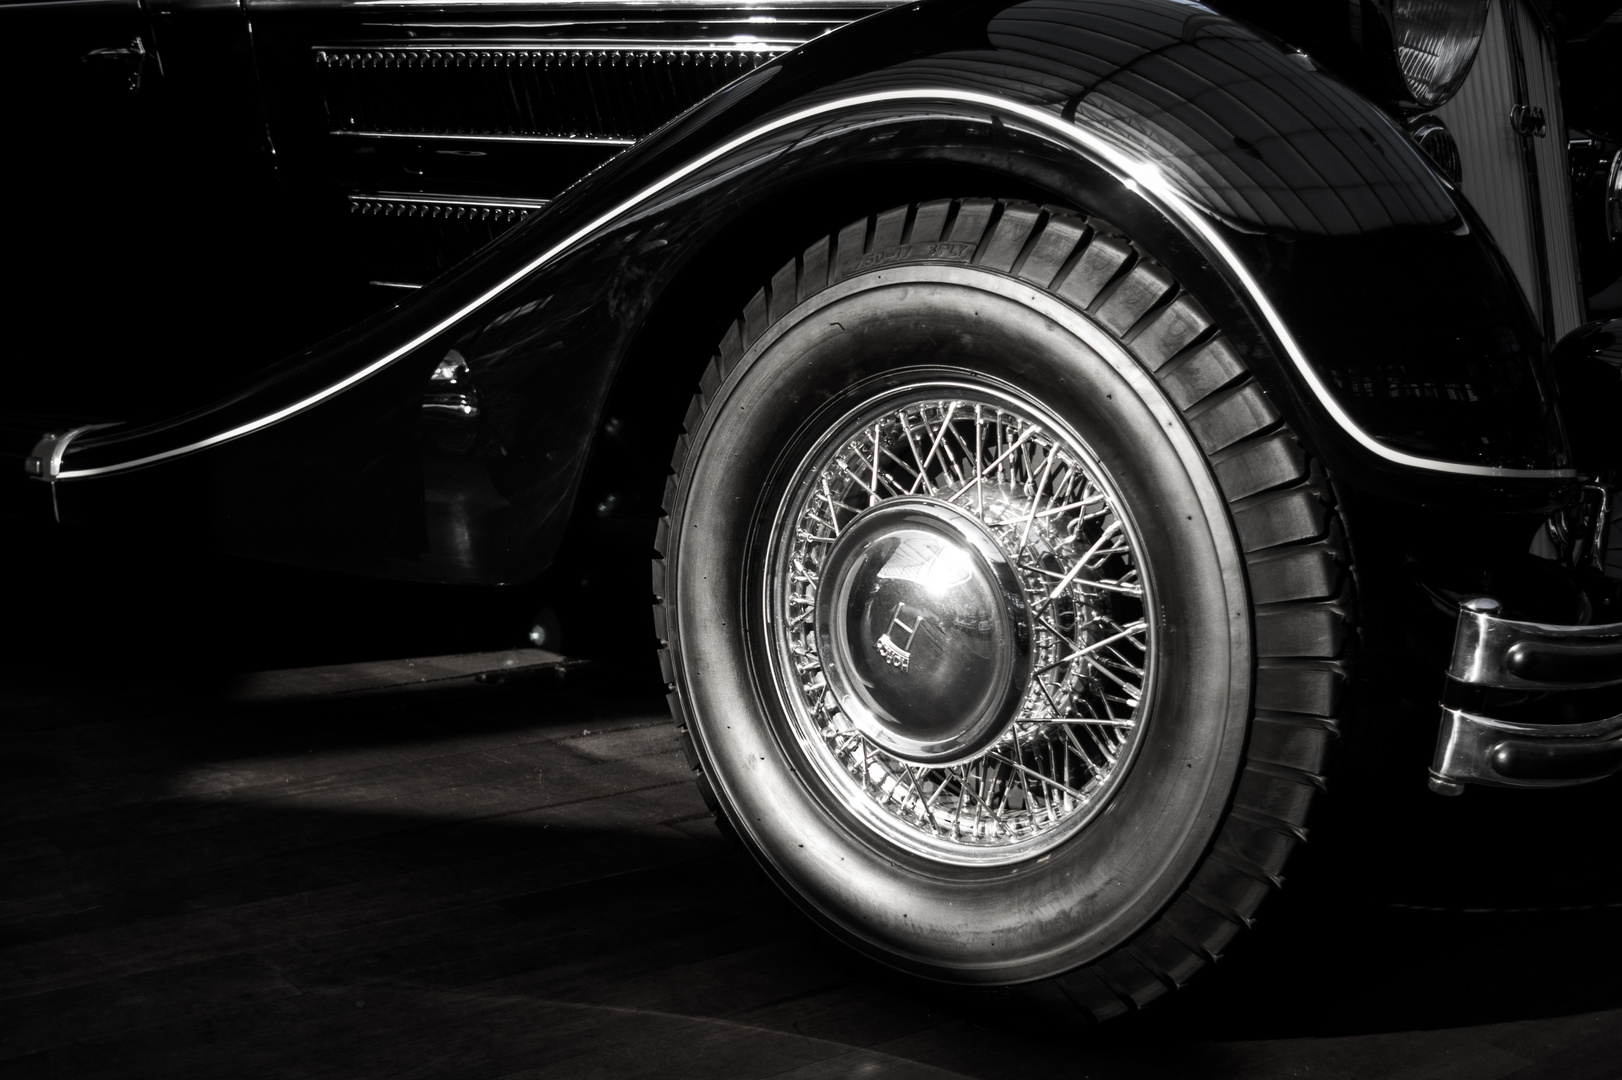 Horch!